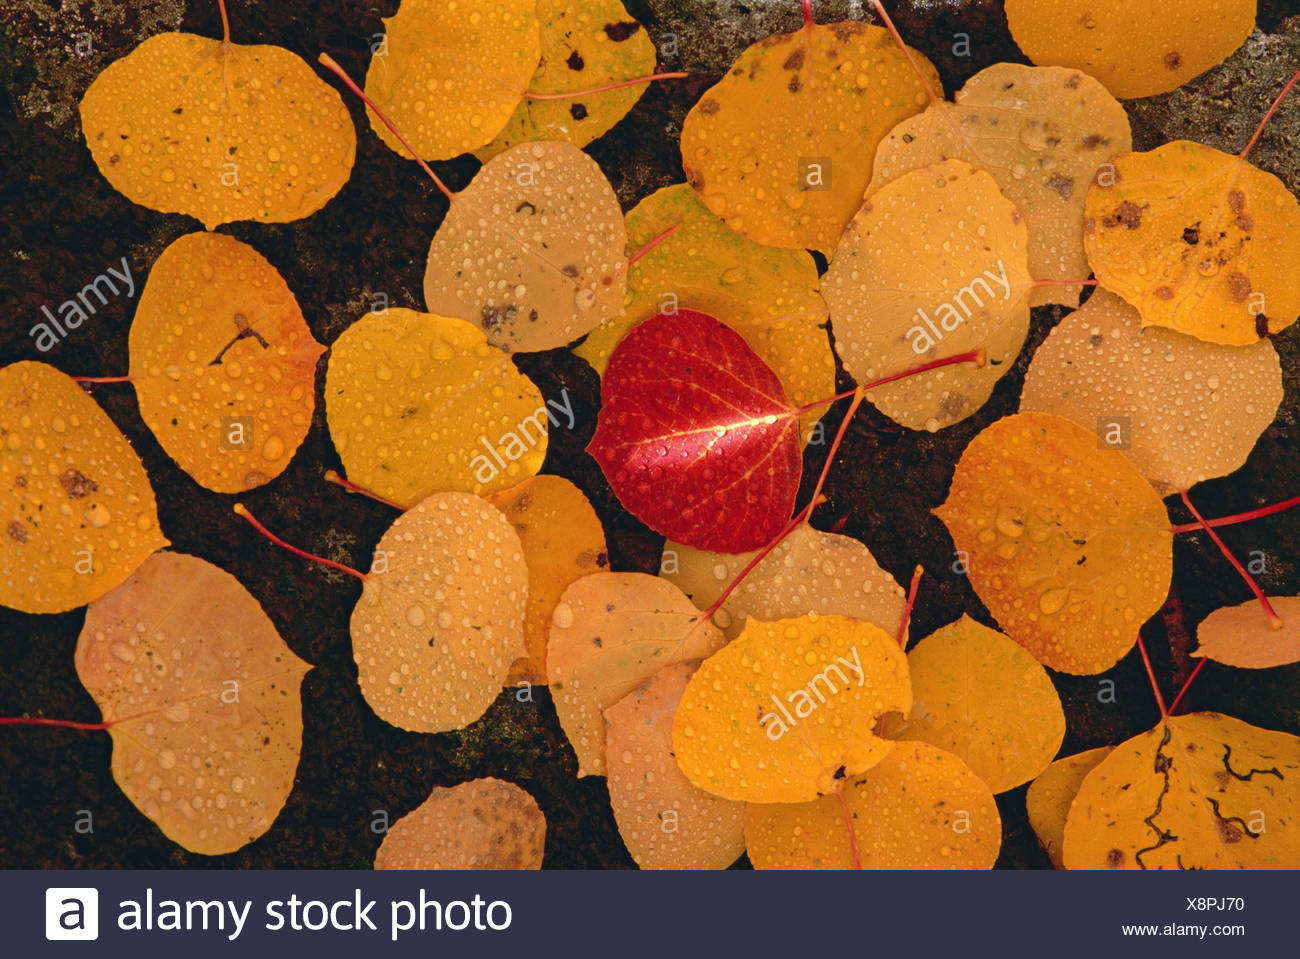 Autumnal aspen leaves. Brown leaves spread out on black rock, with one vivid red leaf in the centre. - Stock Image